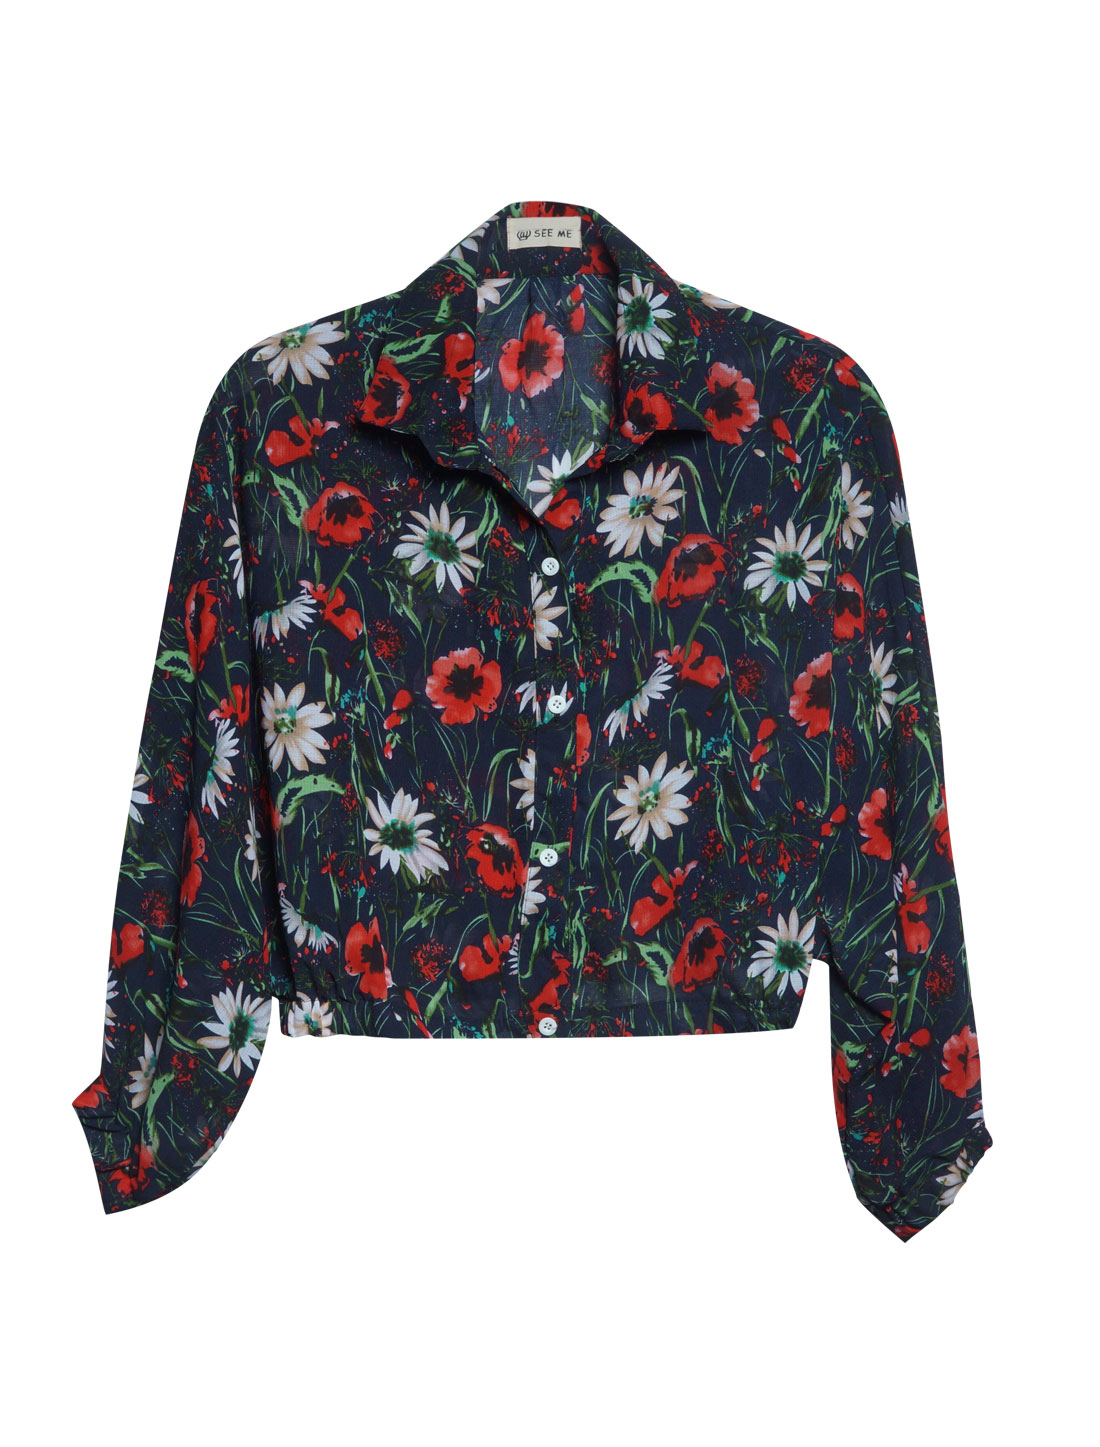 Women Point Collar Floral Prints Batwing Sleeve Fashion Shirt Navy Blue XS